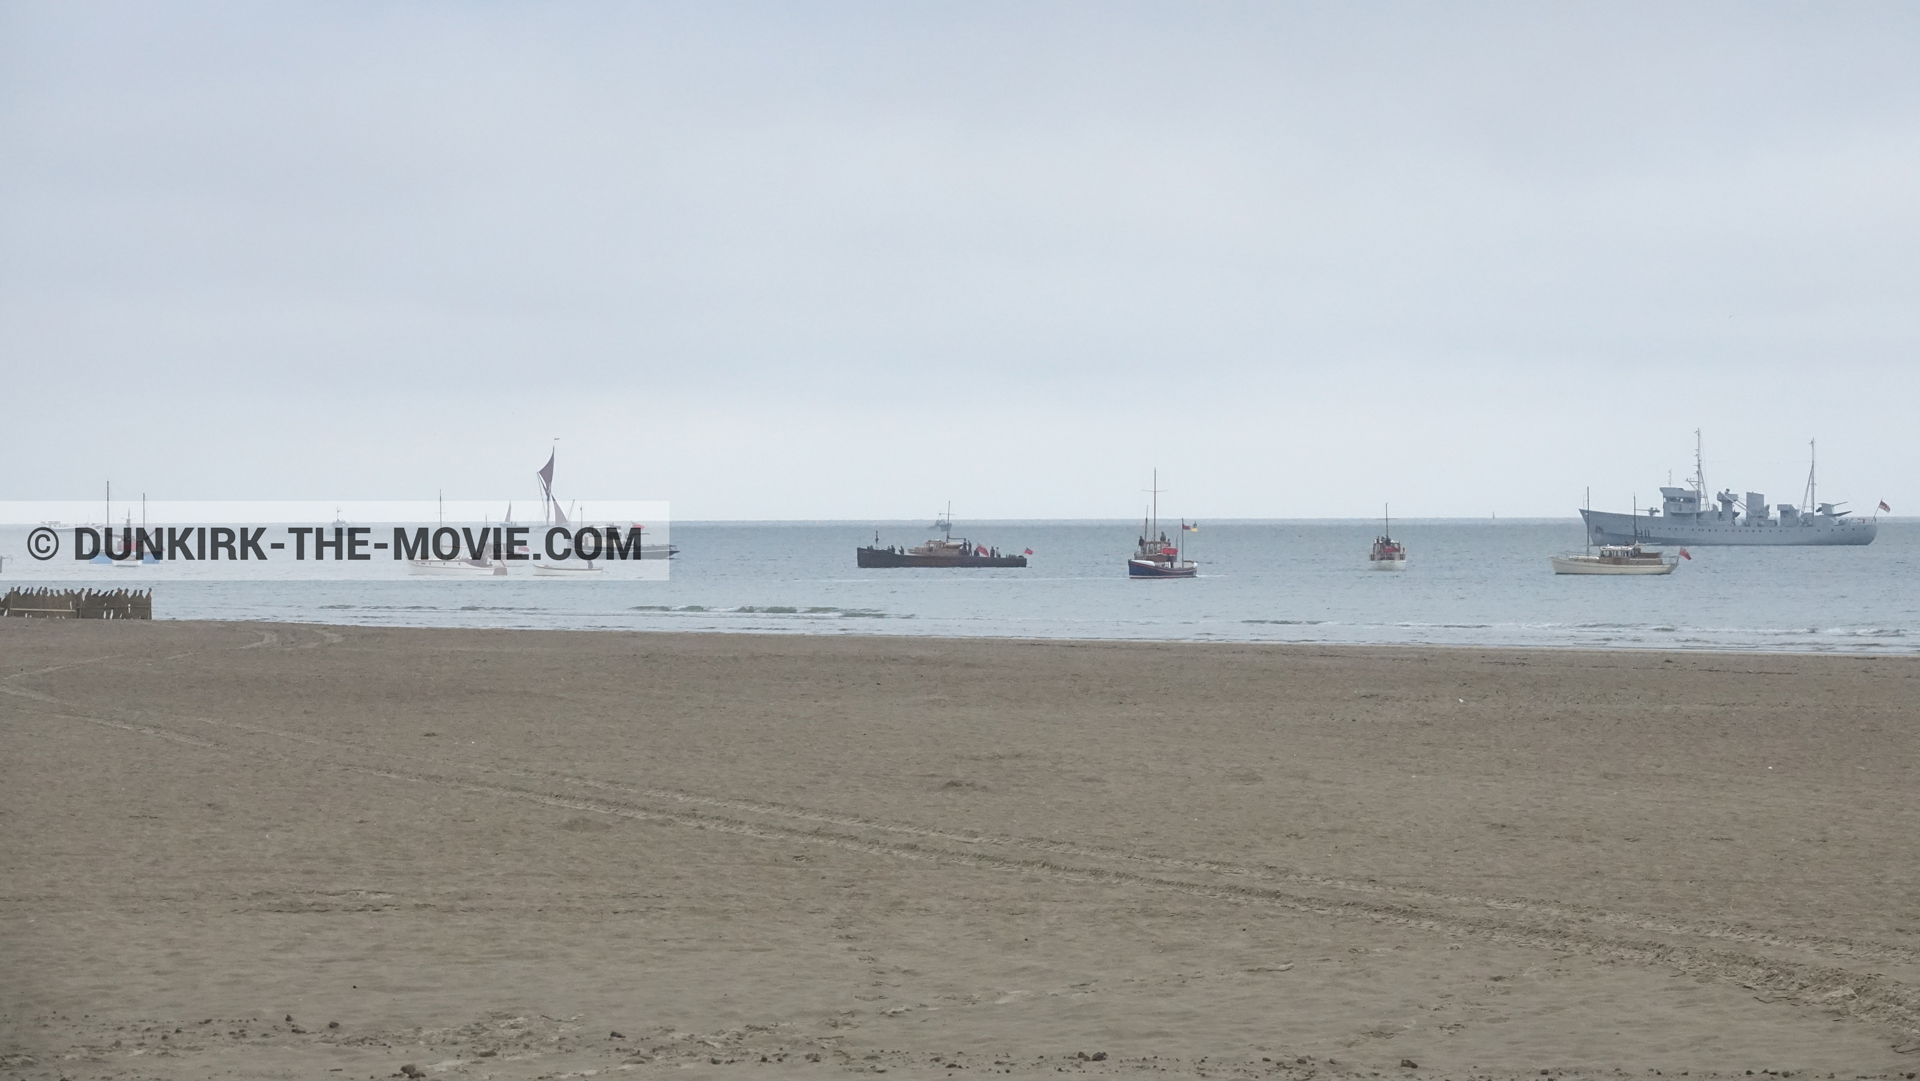 Picture with boat, beach, Xylonite,  from behind the scene of the Dunkirk movie by Nolan